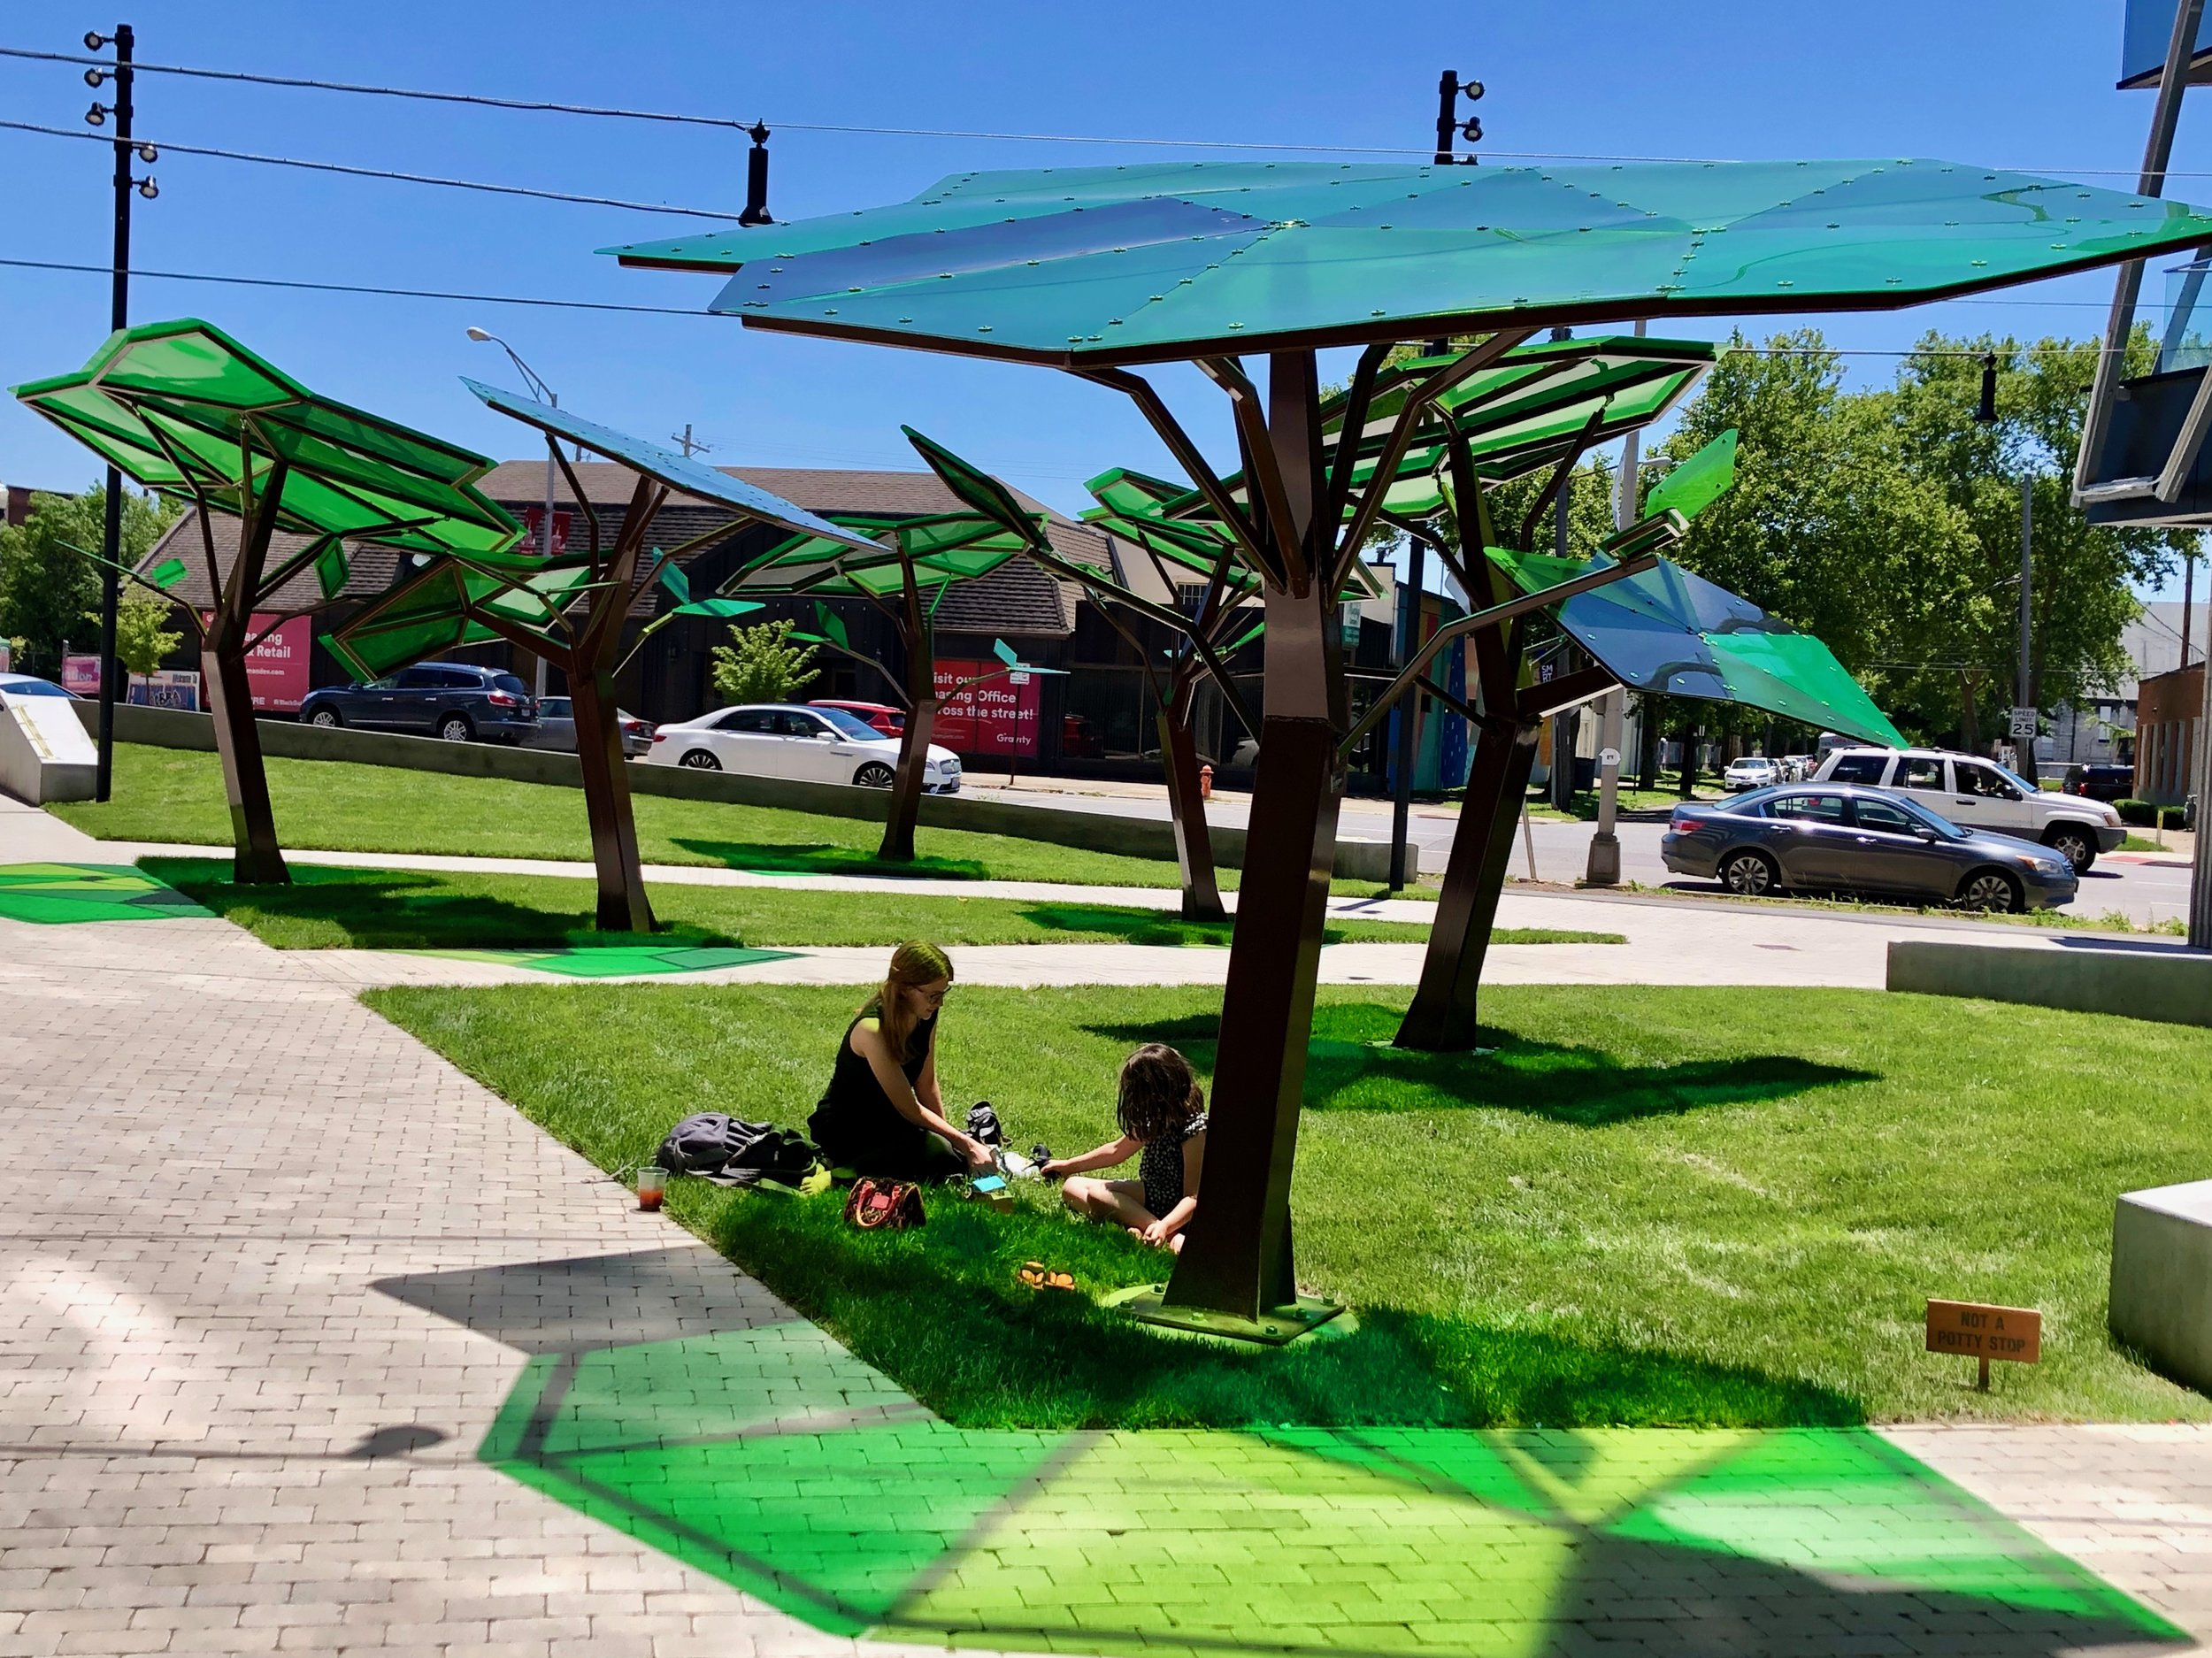 Tree sculptures that provide shade and play